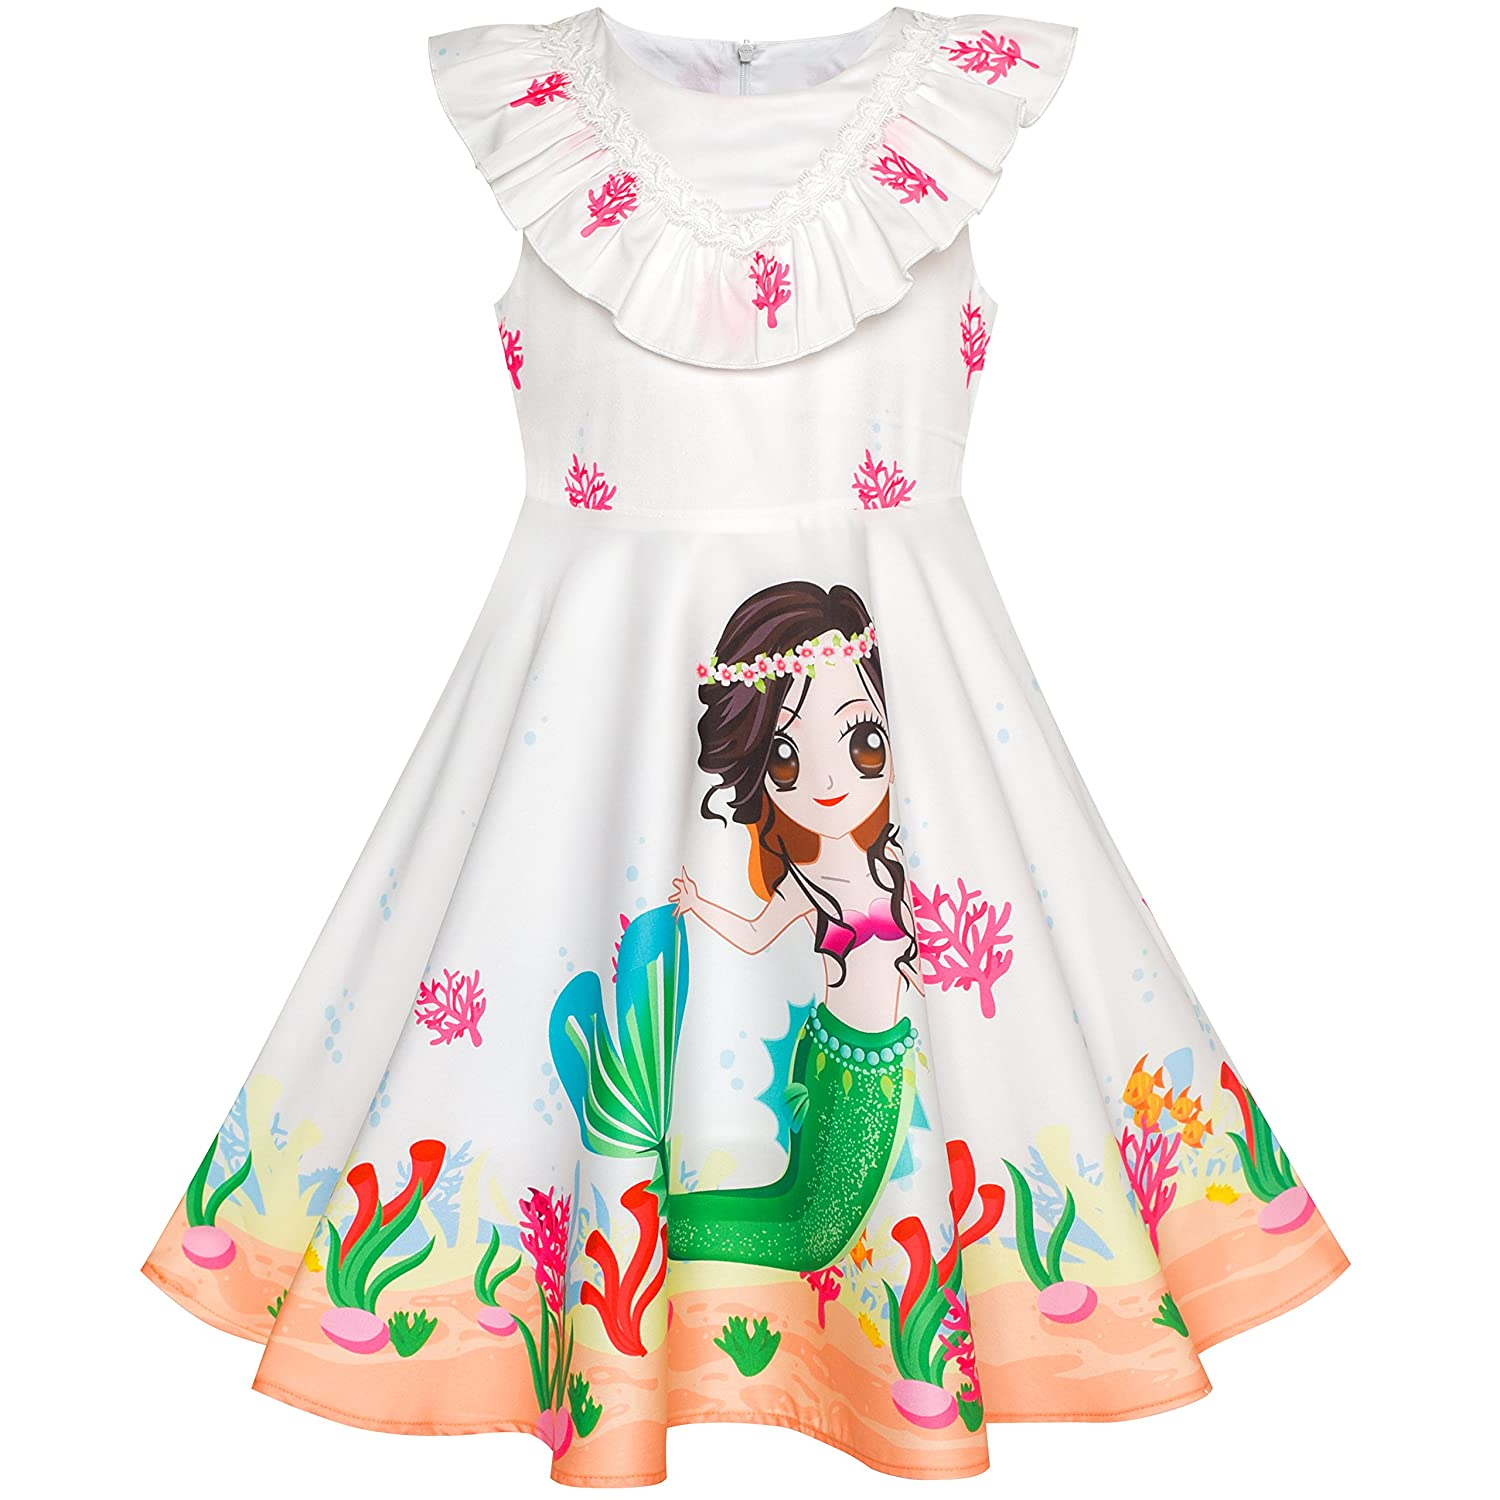 Sunny Fashion Girls Dress Mermaid Cartoon Princess Ruffle Collar Party Dress